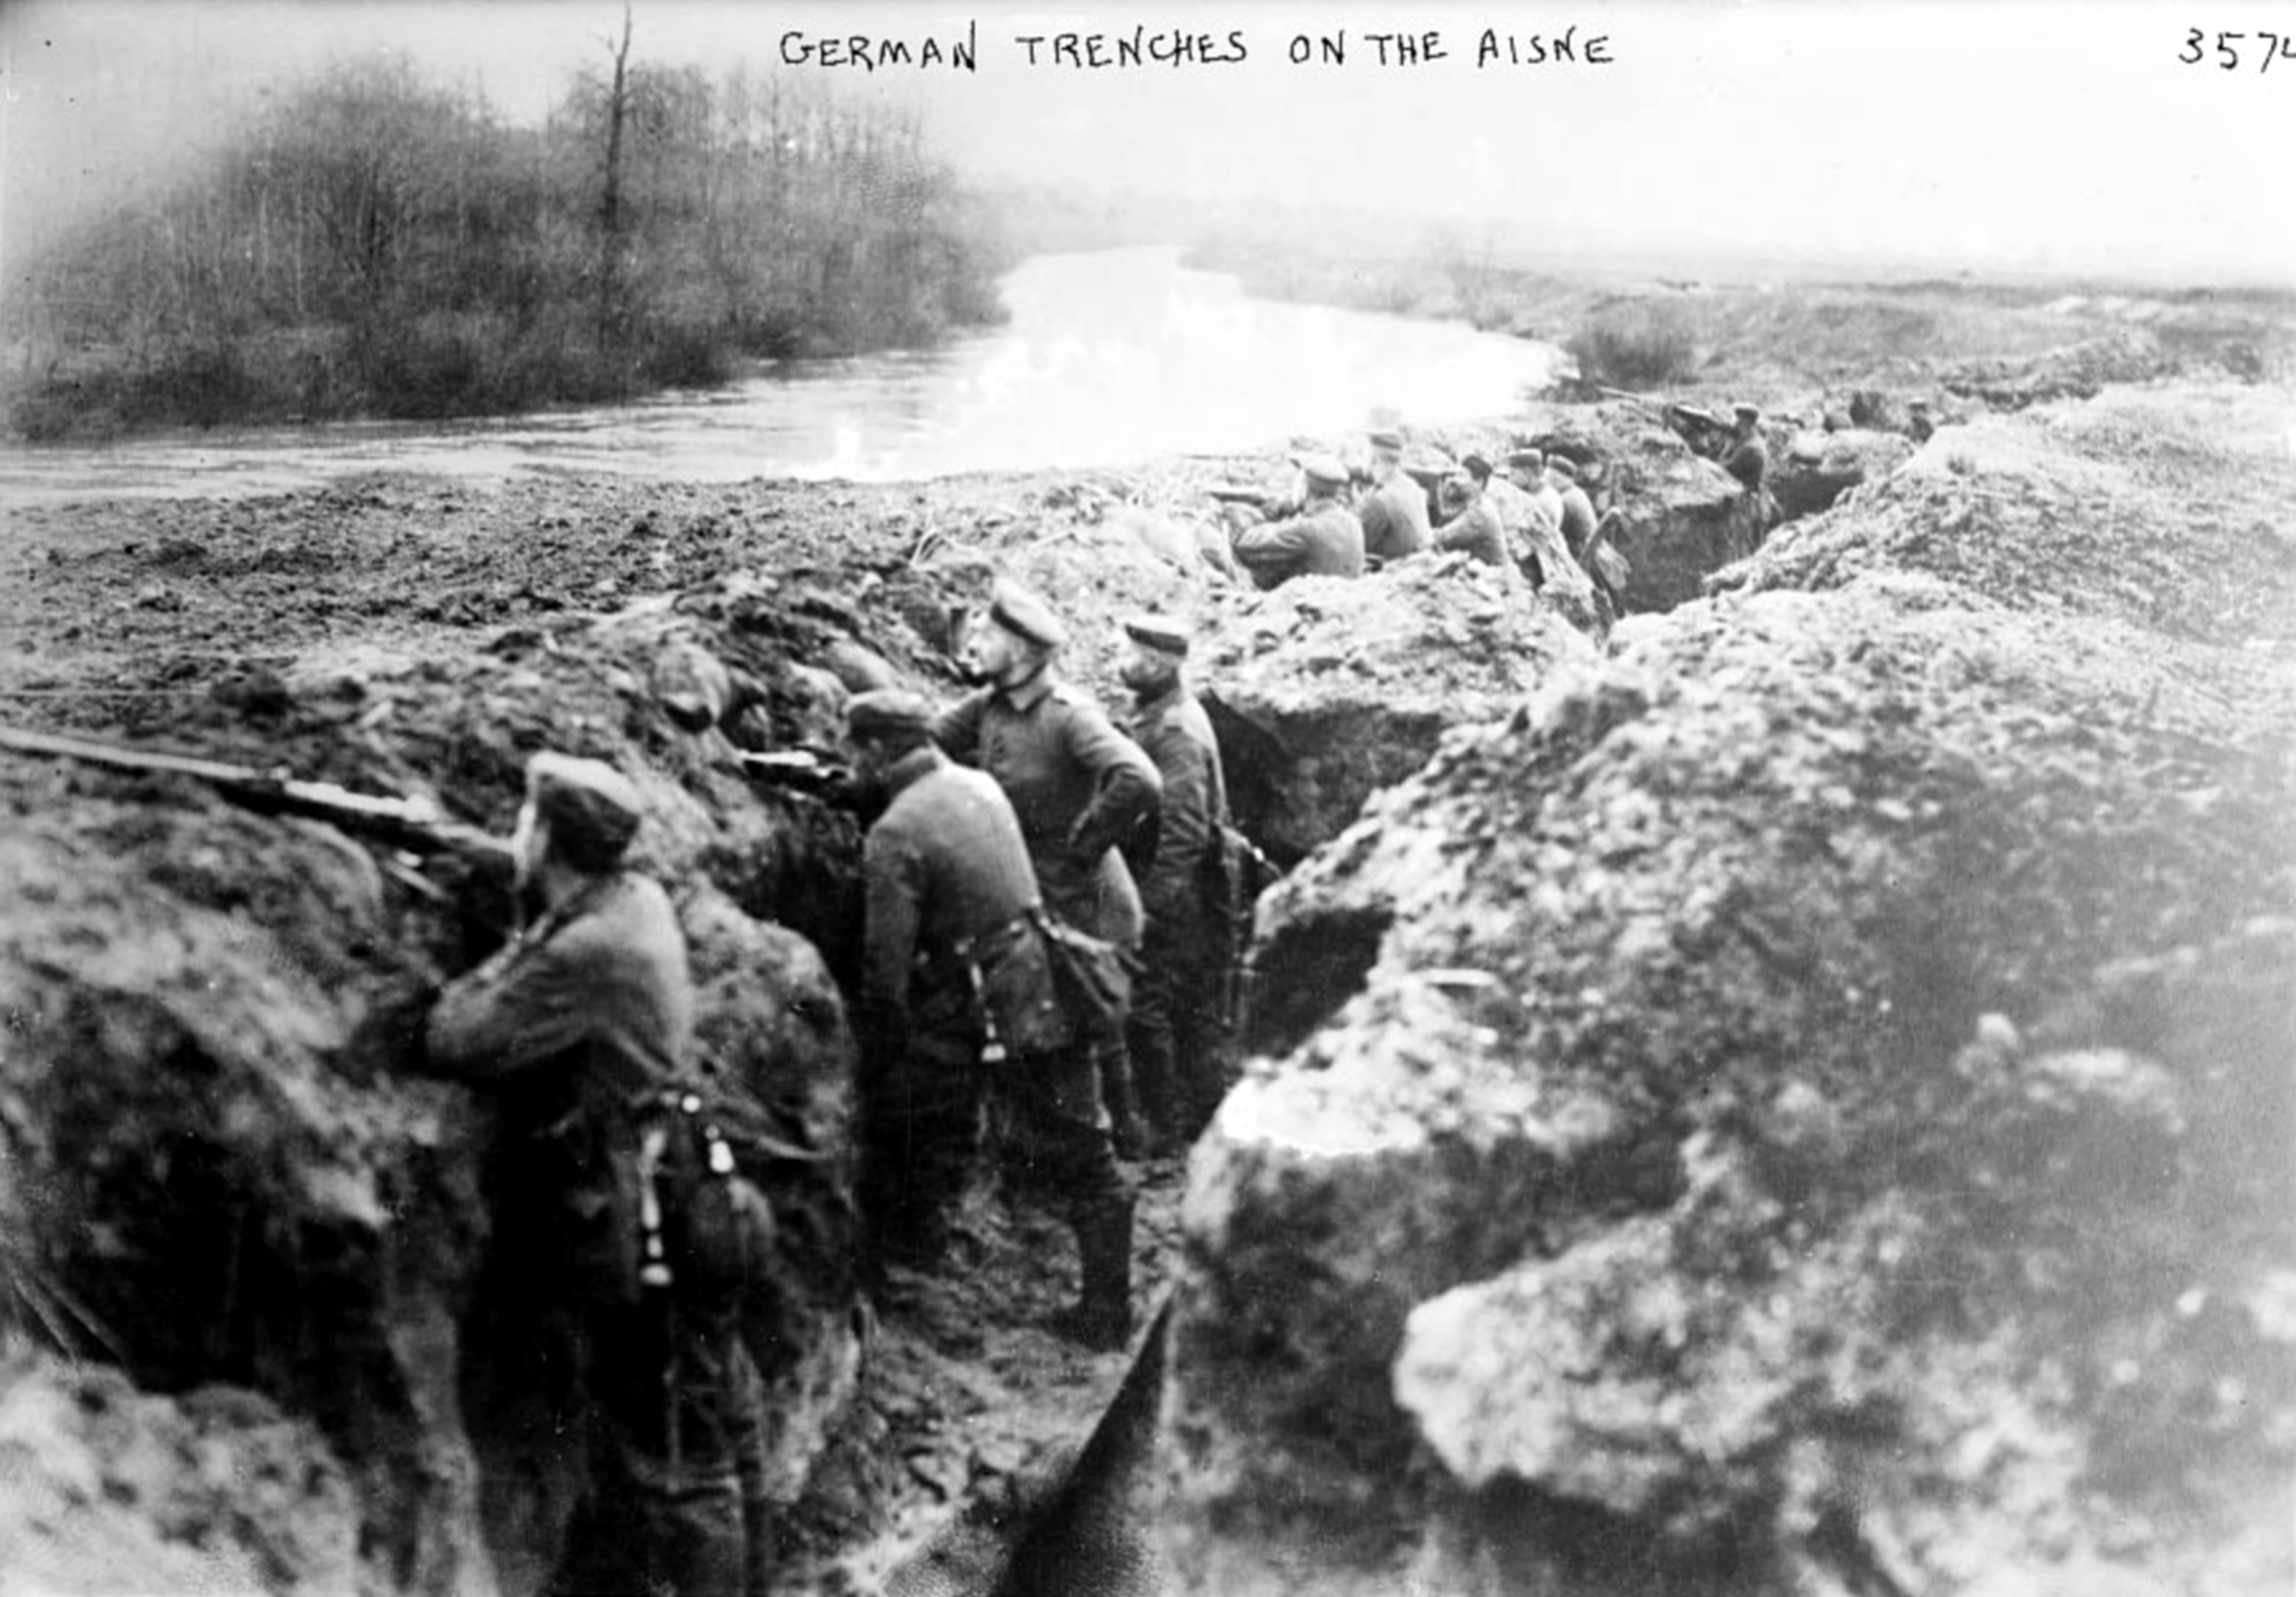 german trenches on the aisne.jpg